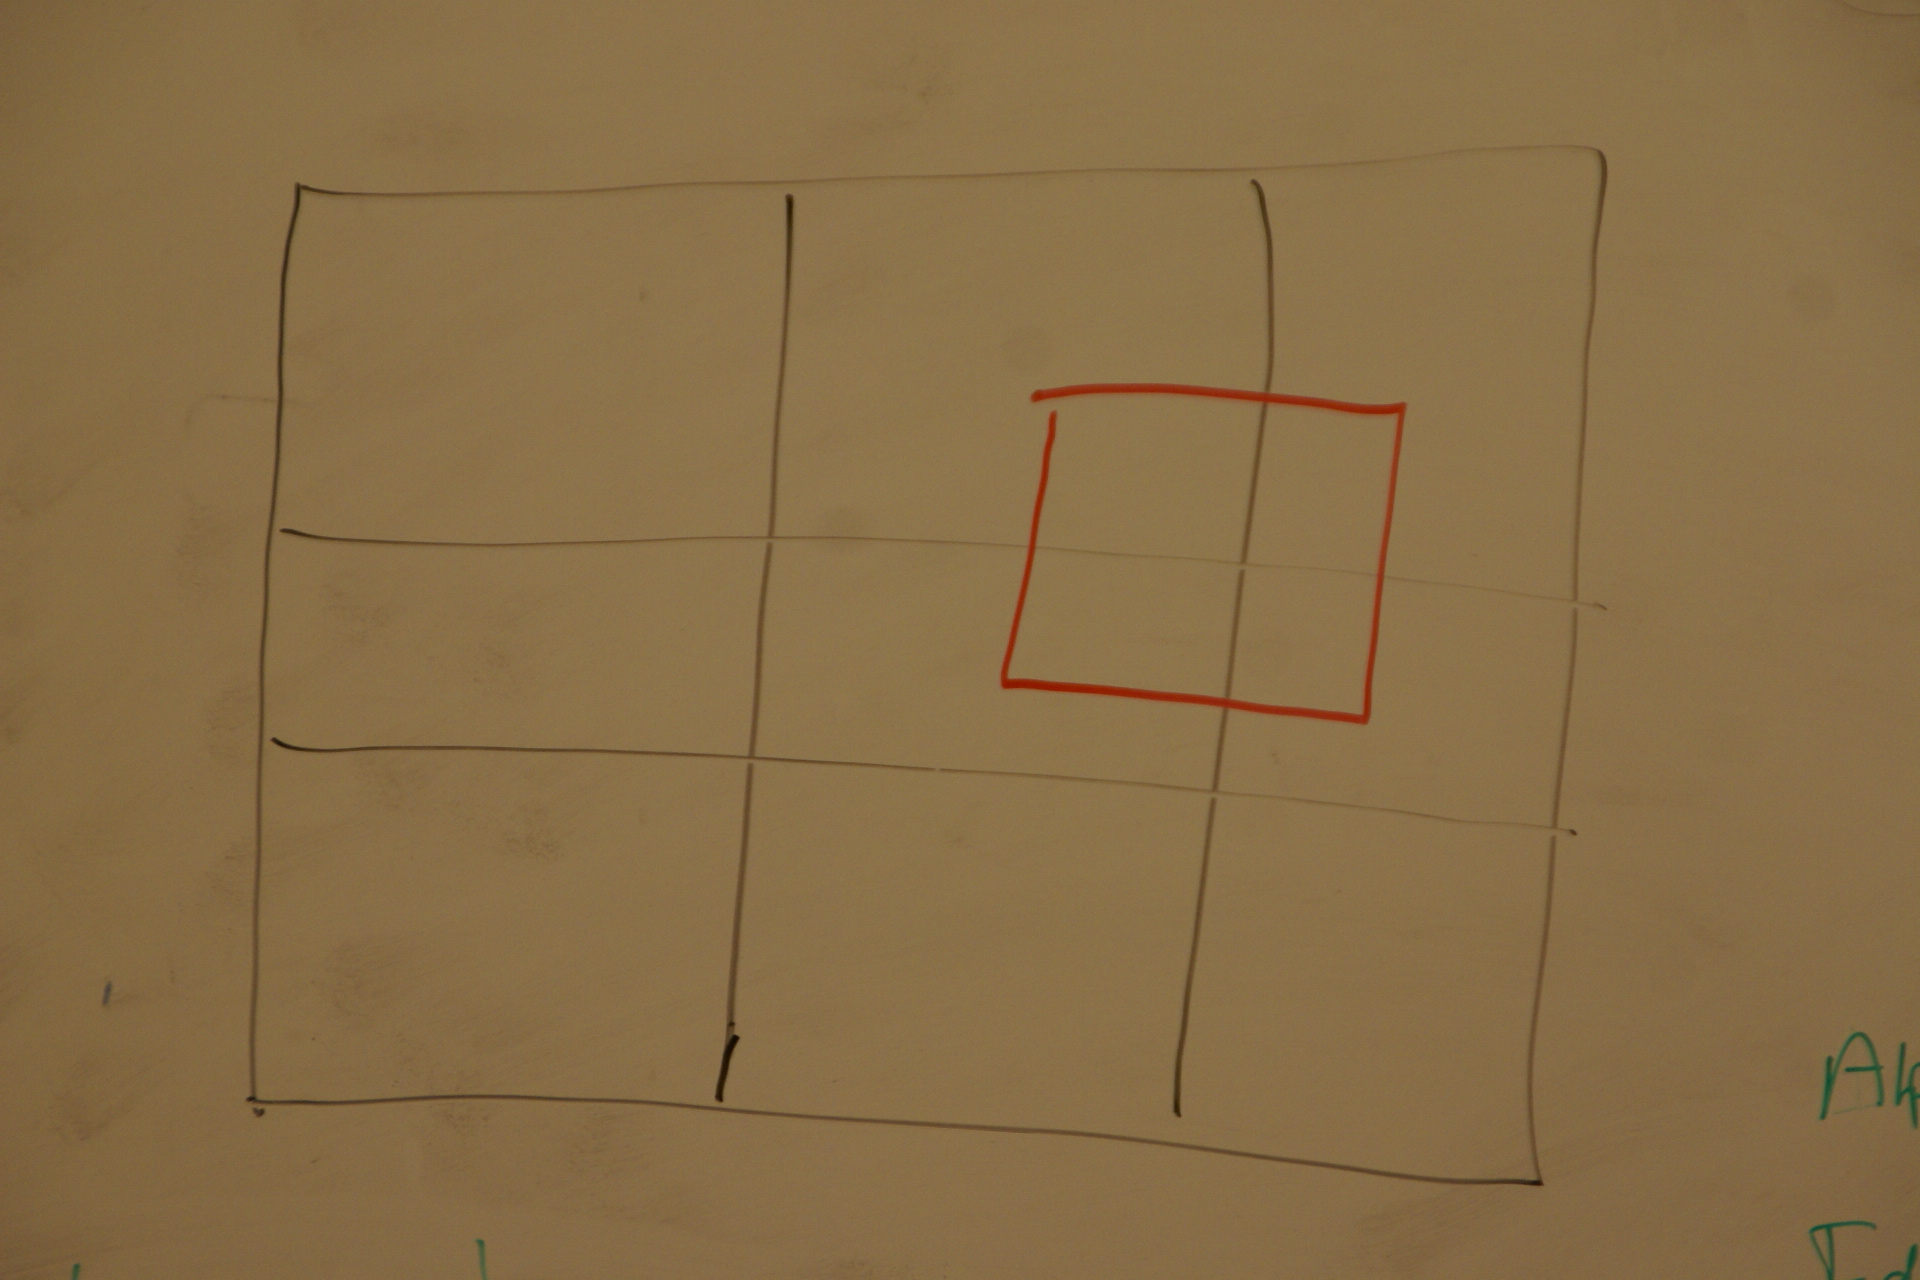 Drawing Lines With Css : Whiteboard from css meeting l david baron on